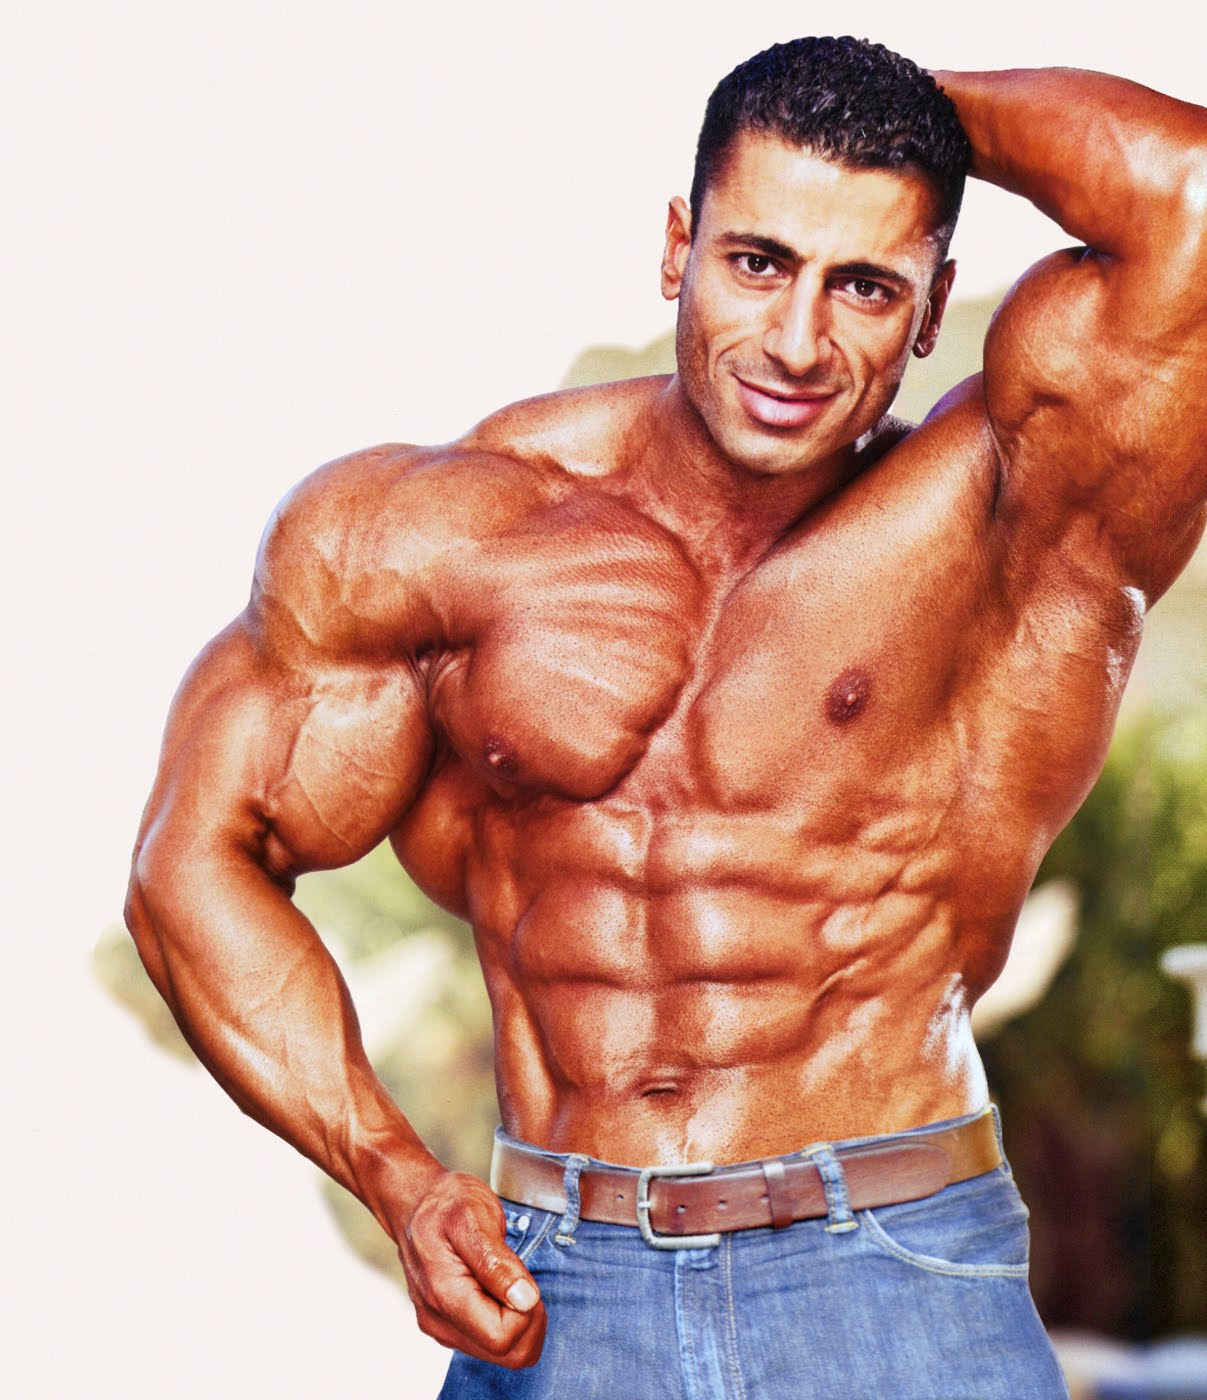 Muscle Building Foods In India